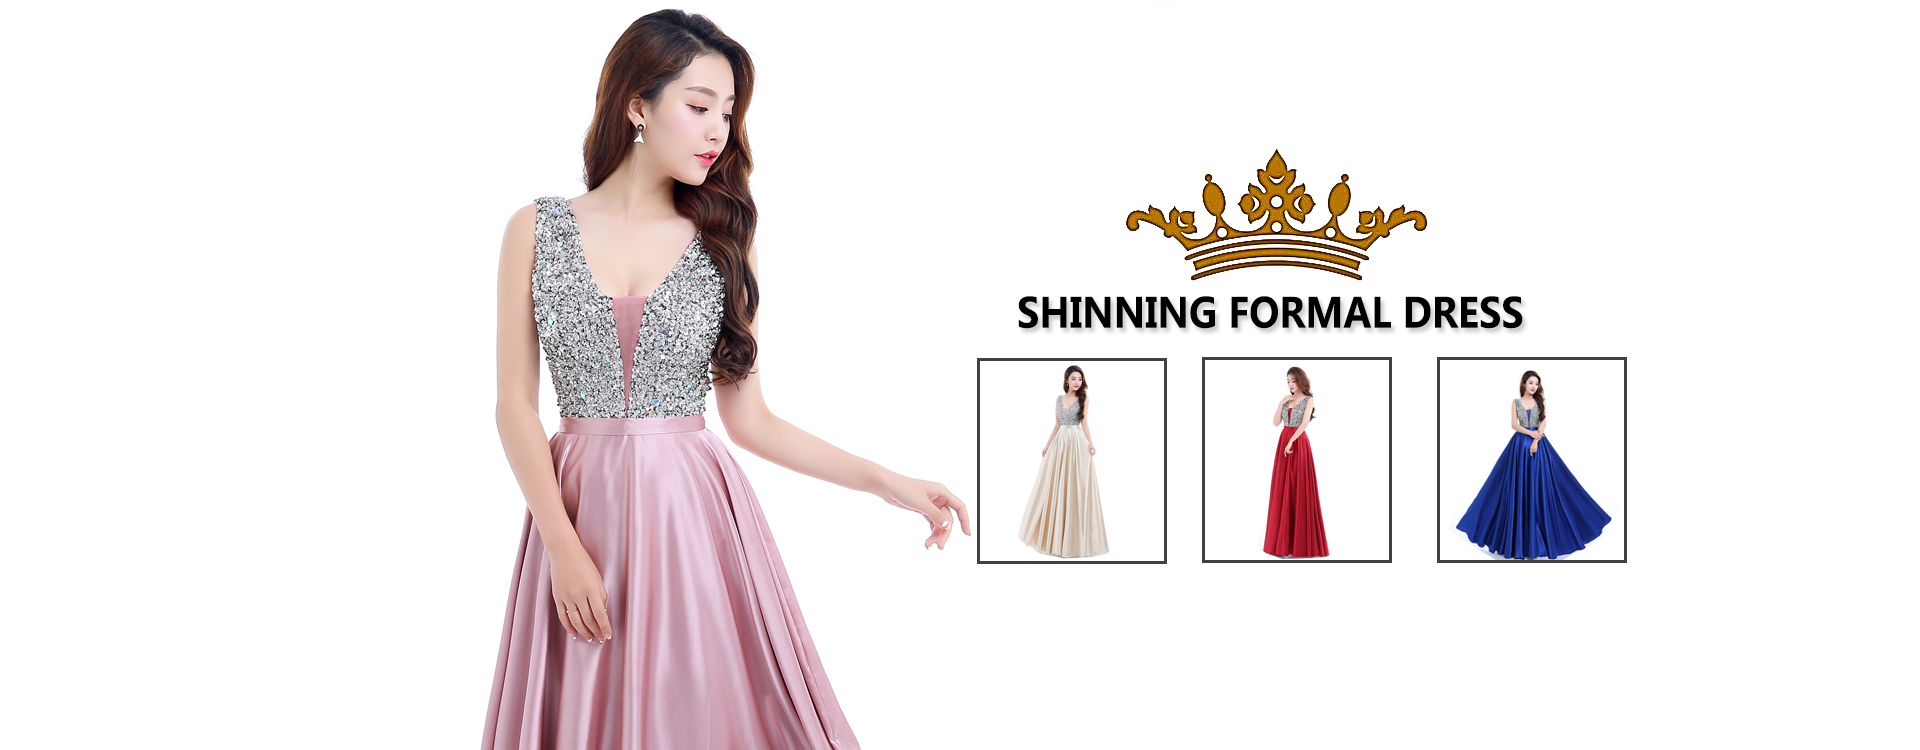 c13378c3e5c003 Ladybeauty Official Store - Small Orders Online Store, Hot Selling ...